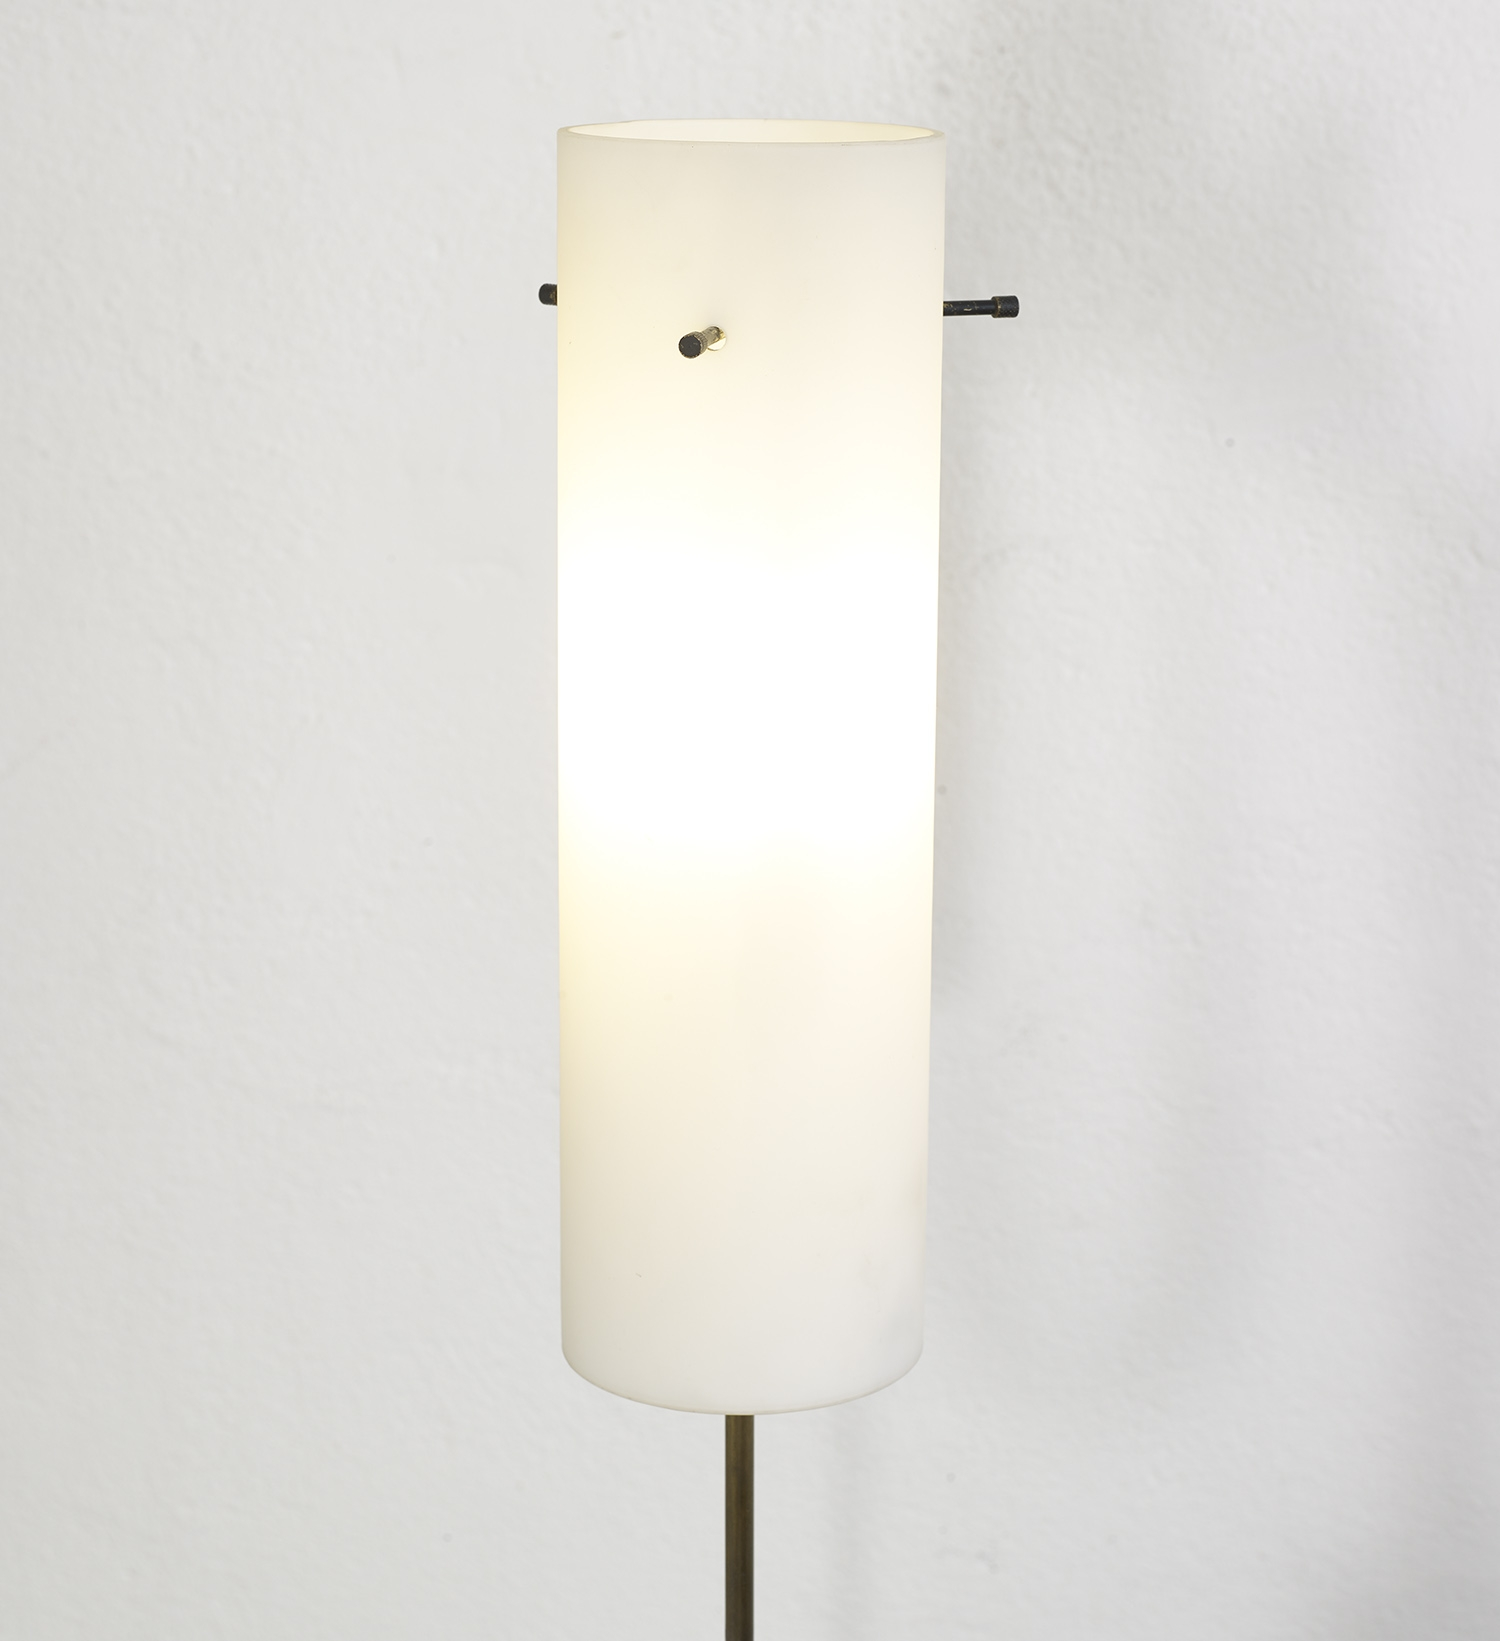 floor-lamp-italy-1960-image-02